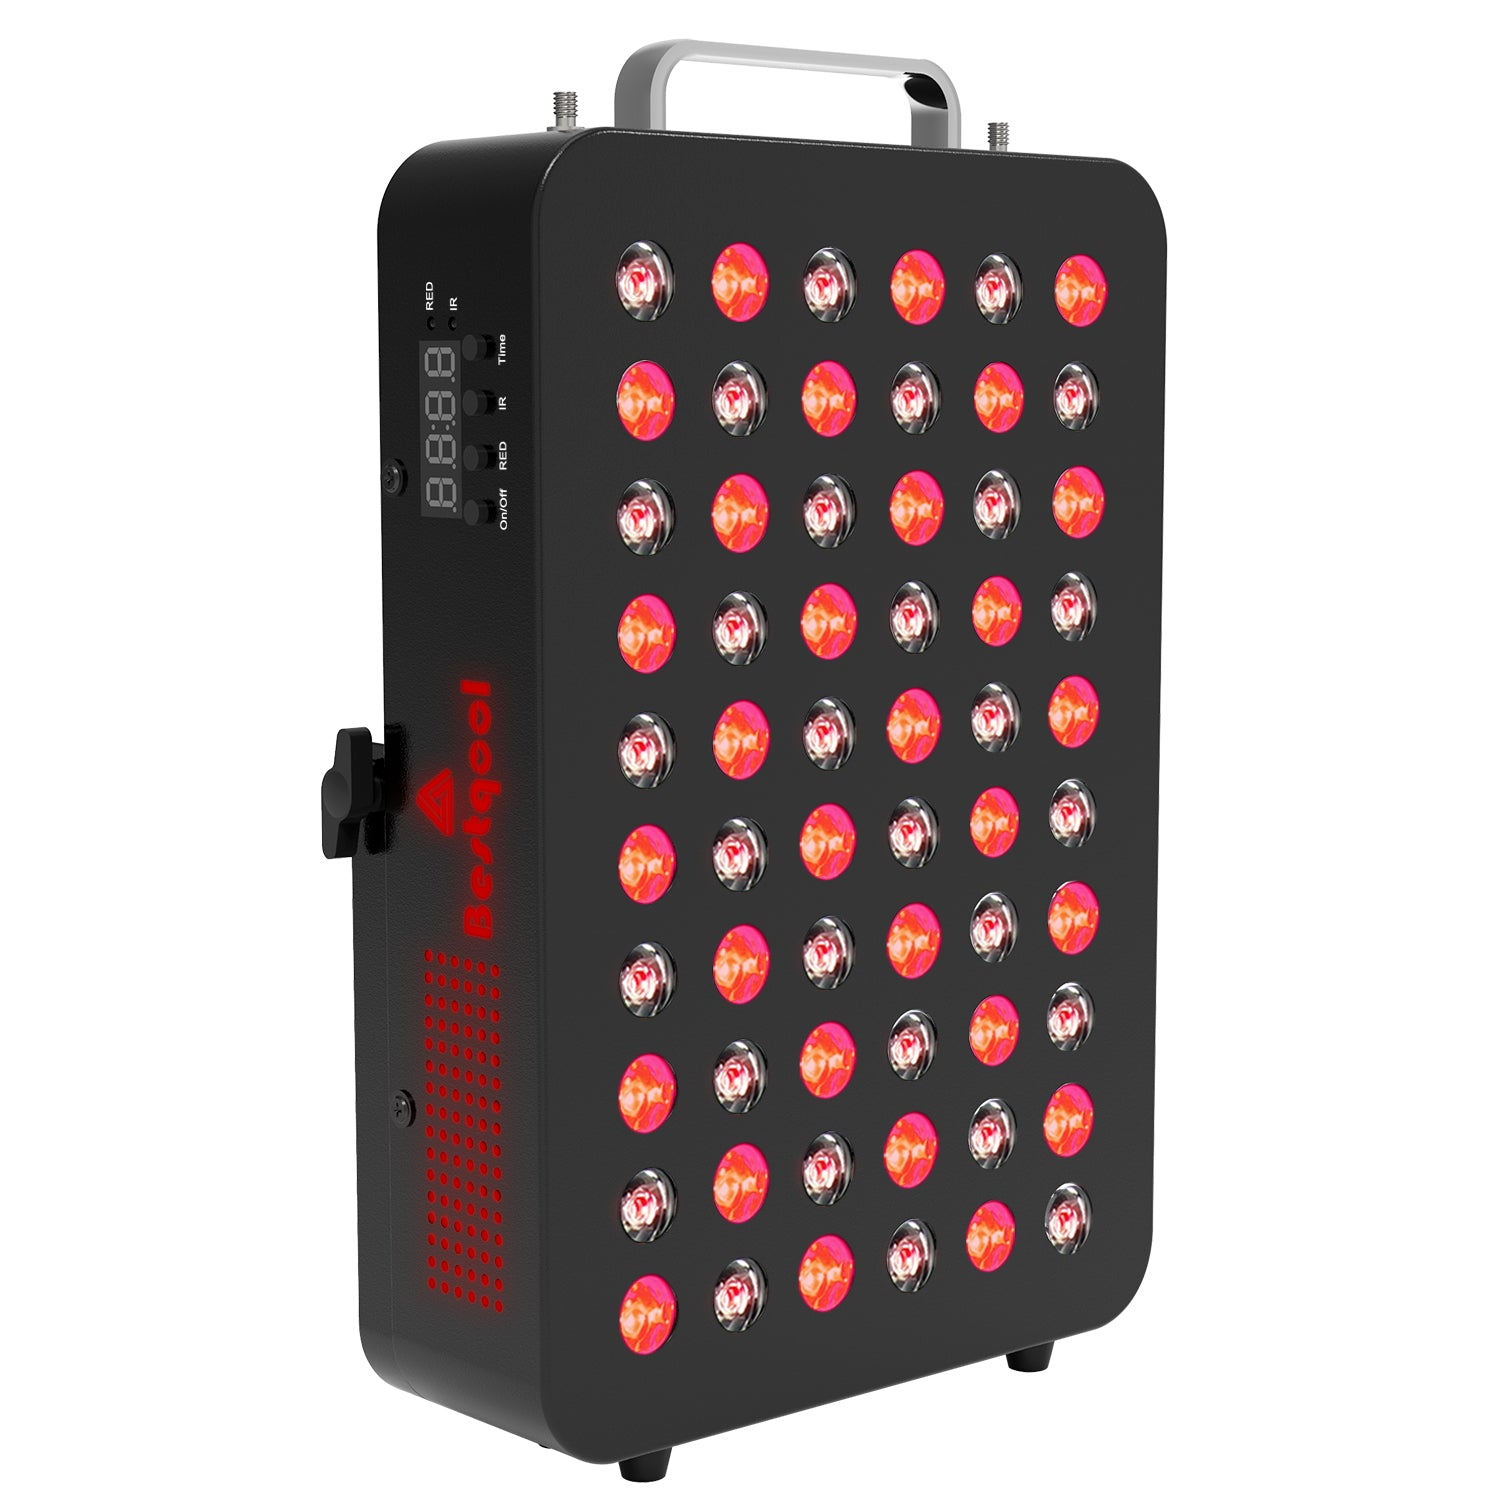 Targeted Red Light Therapy X-60